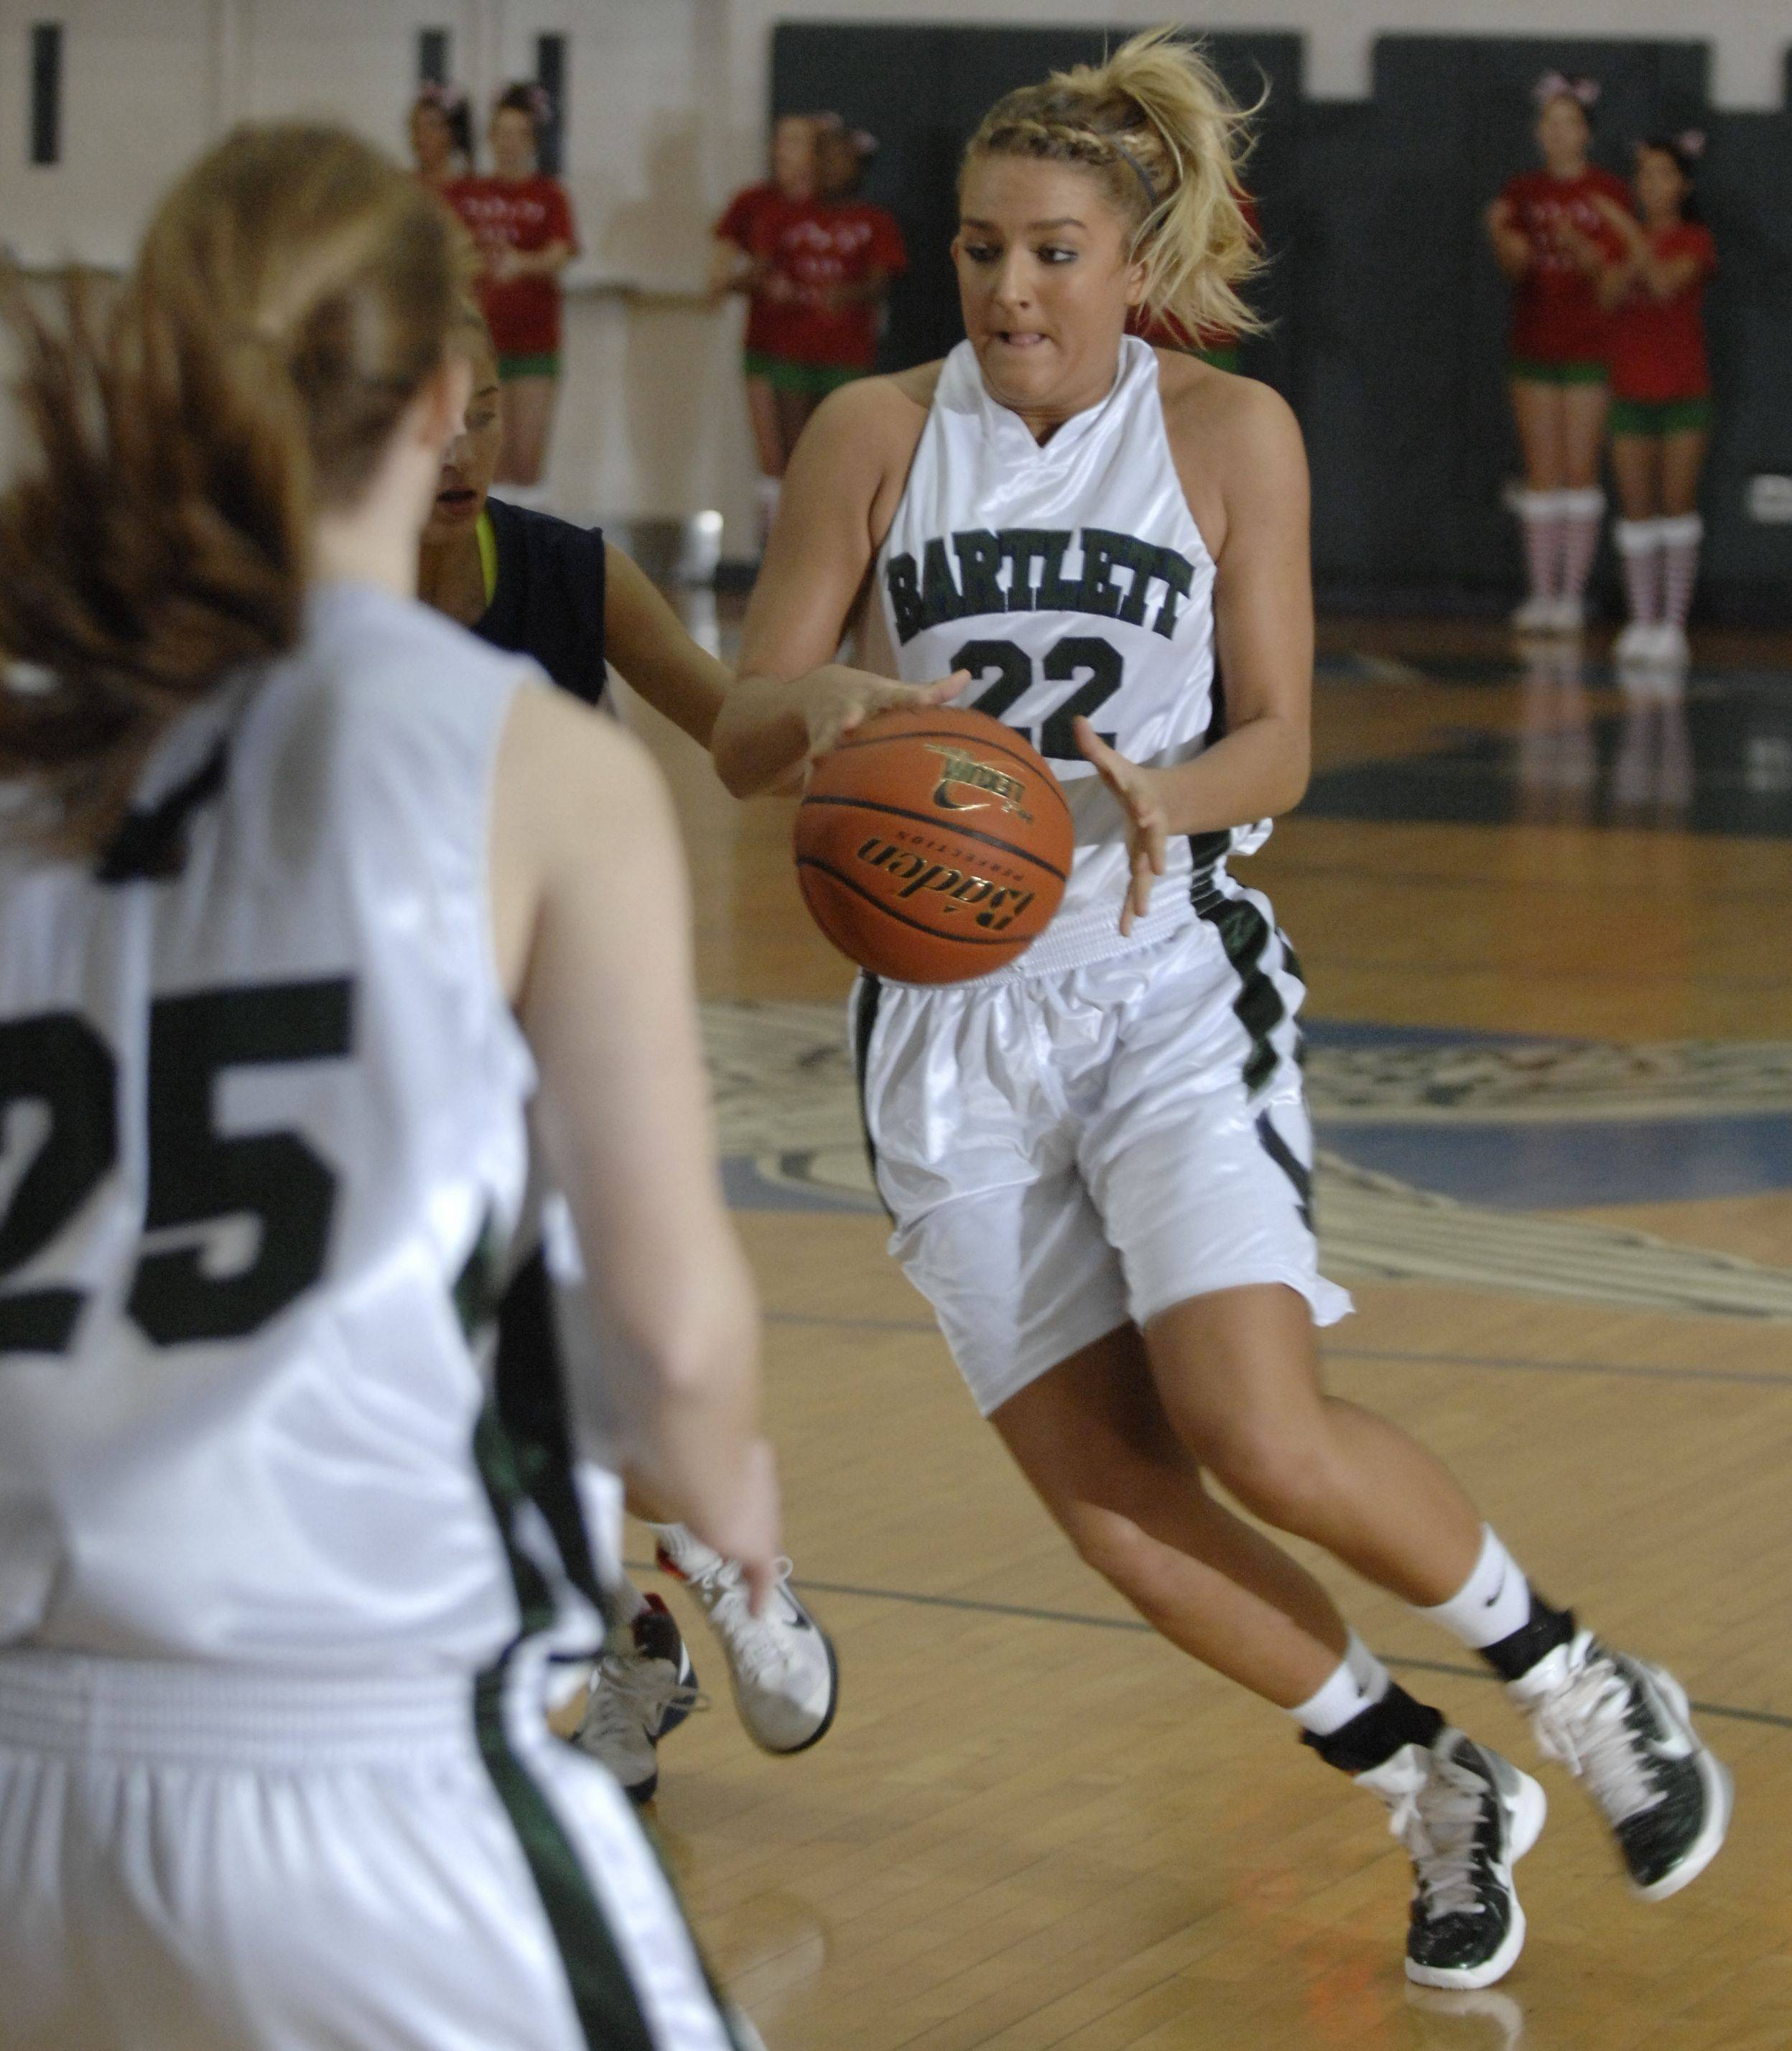 Images from the West Chicago vs. Bartlett girls basketball game Saturday, December 18, 2010.